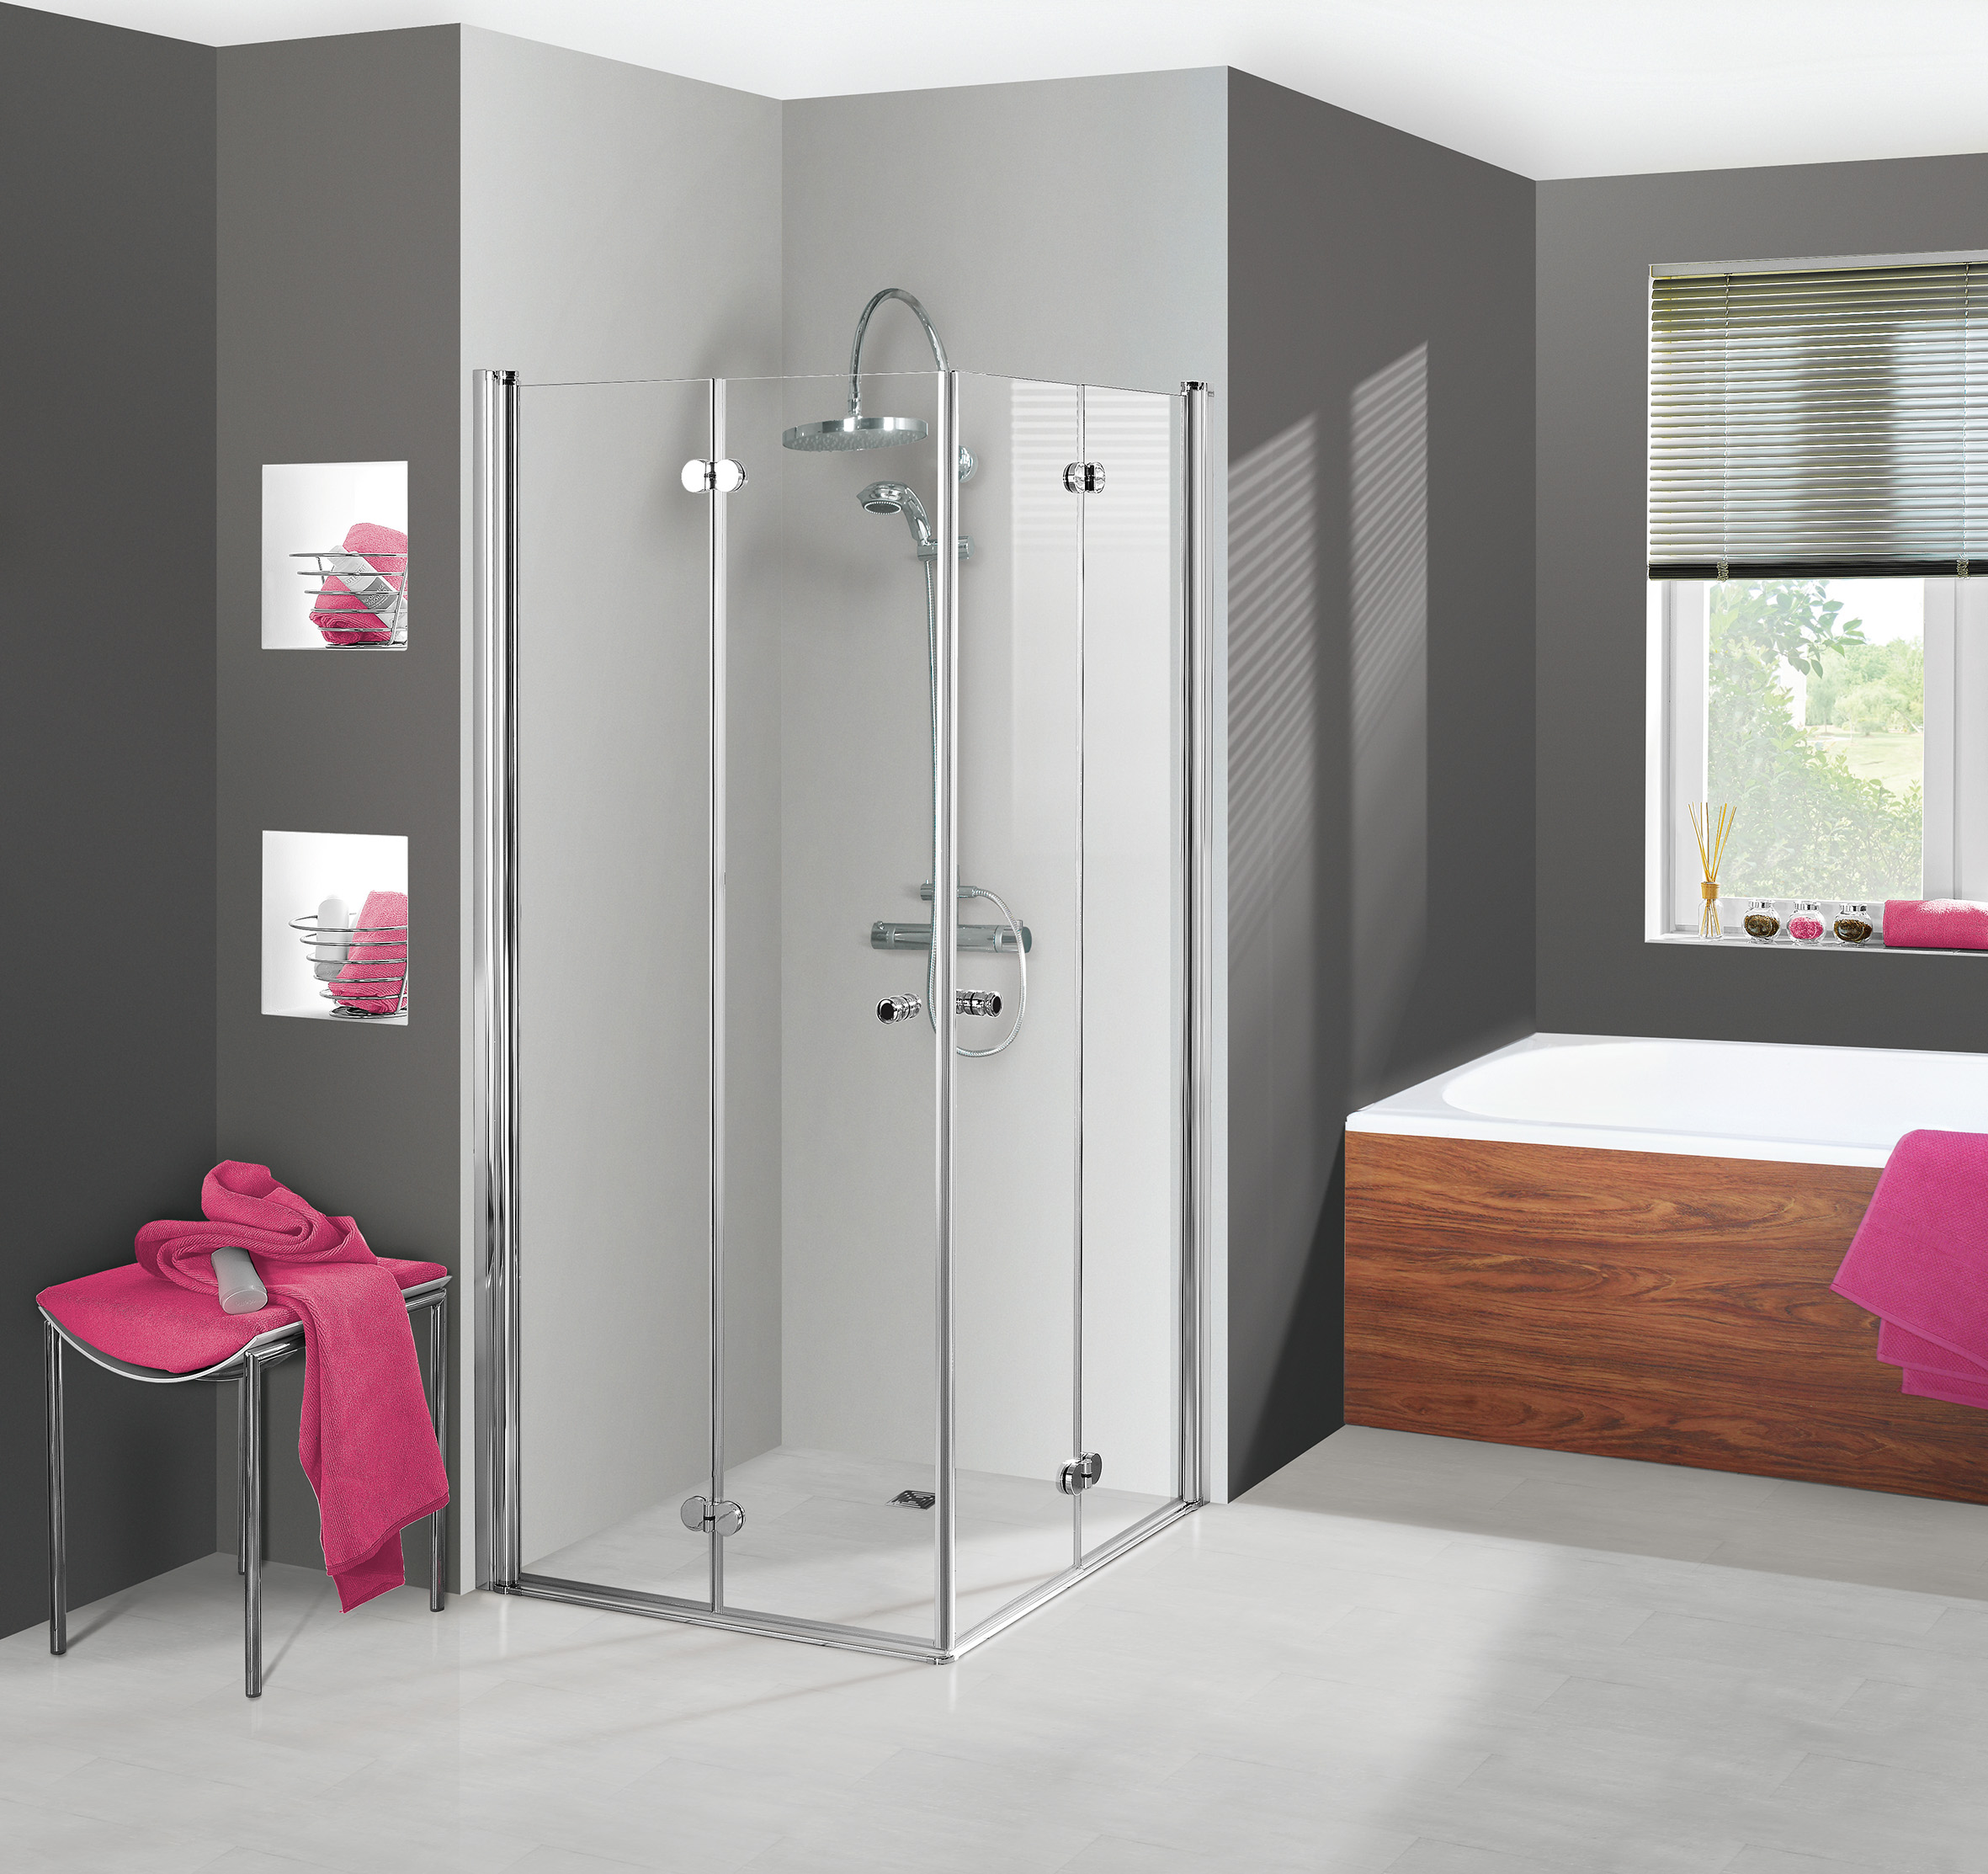 duschkabine dusche elana komfort dreh faltt r eckeinstieg 100x100x200 ebay. Black Bedroom Furniture Sets. Home Design Ideas